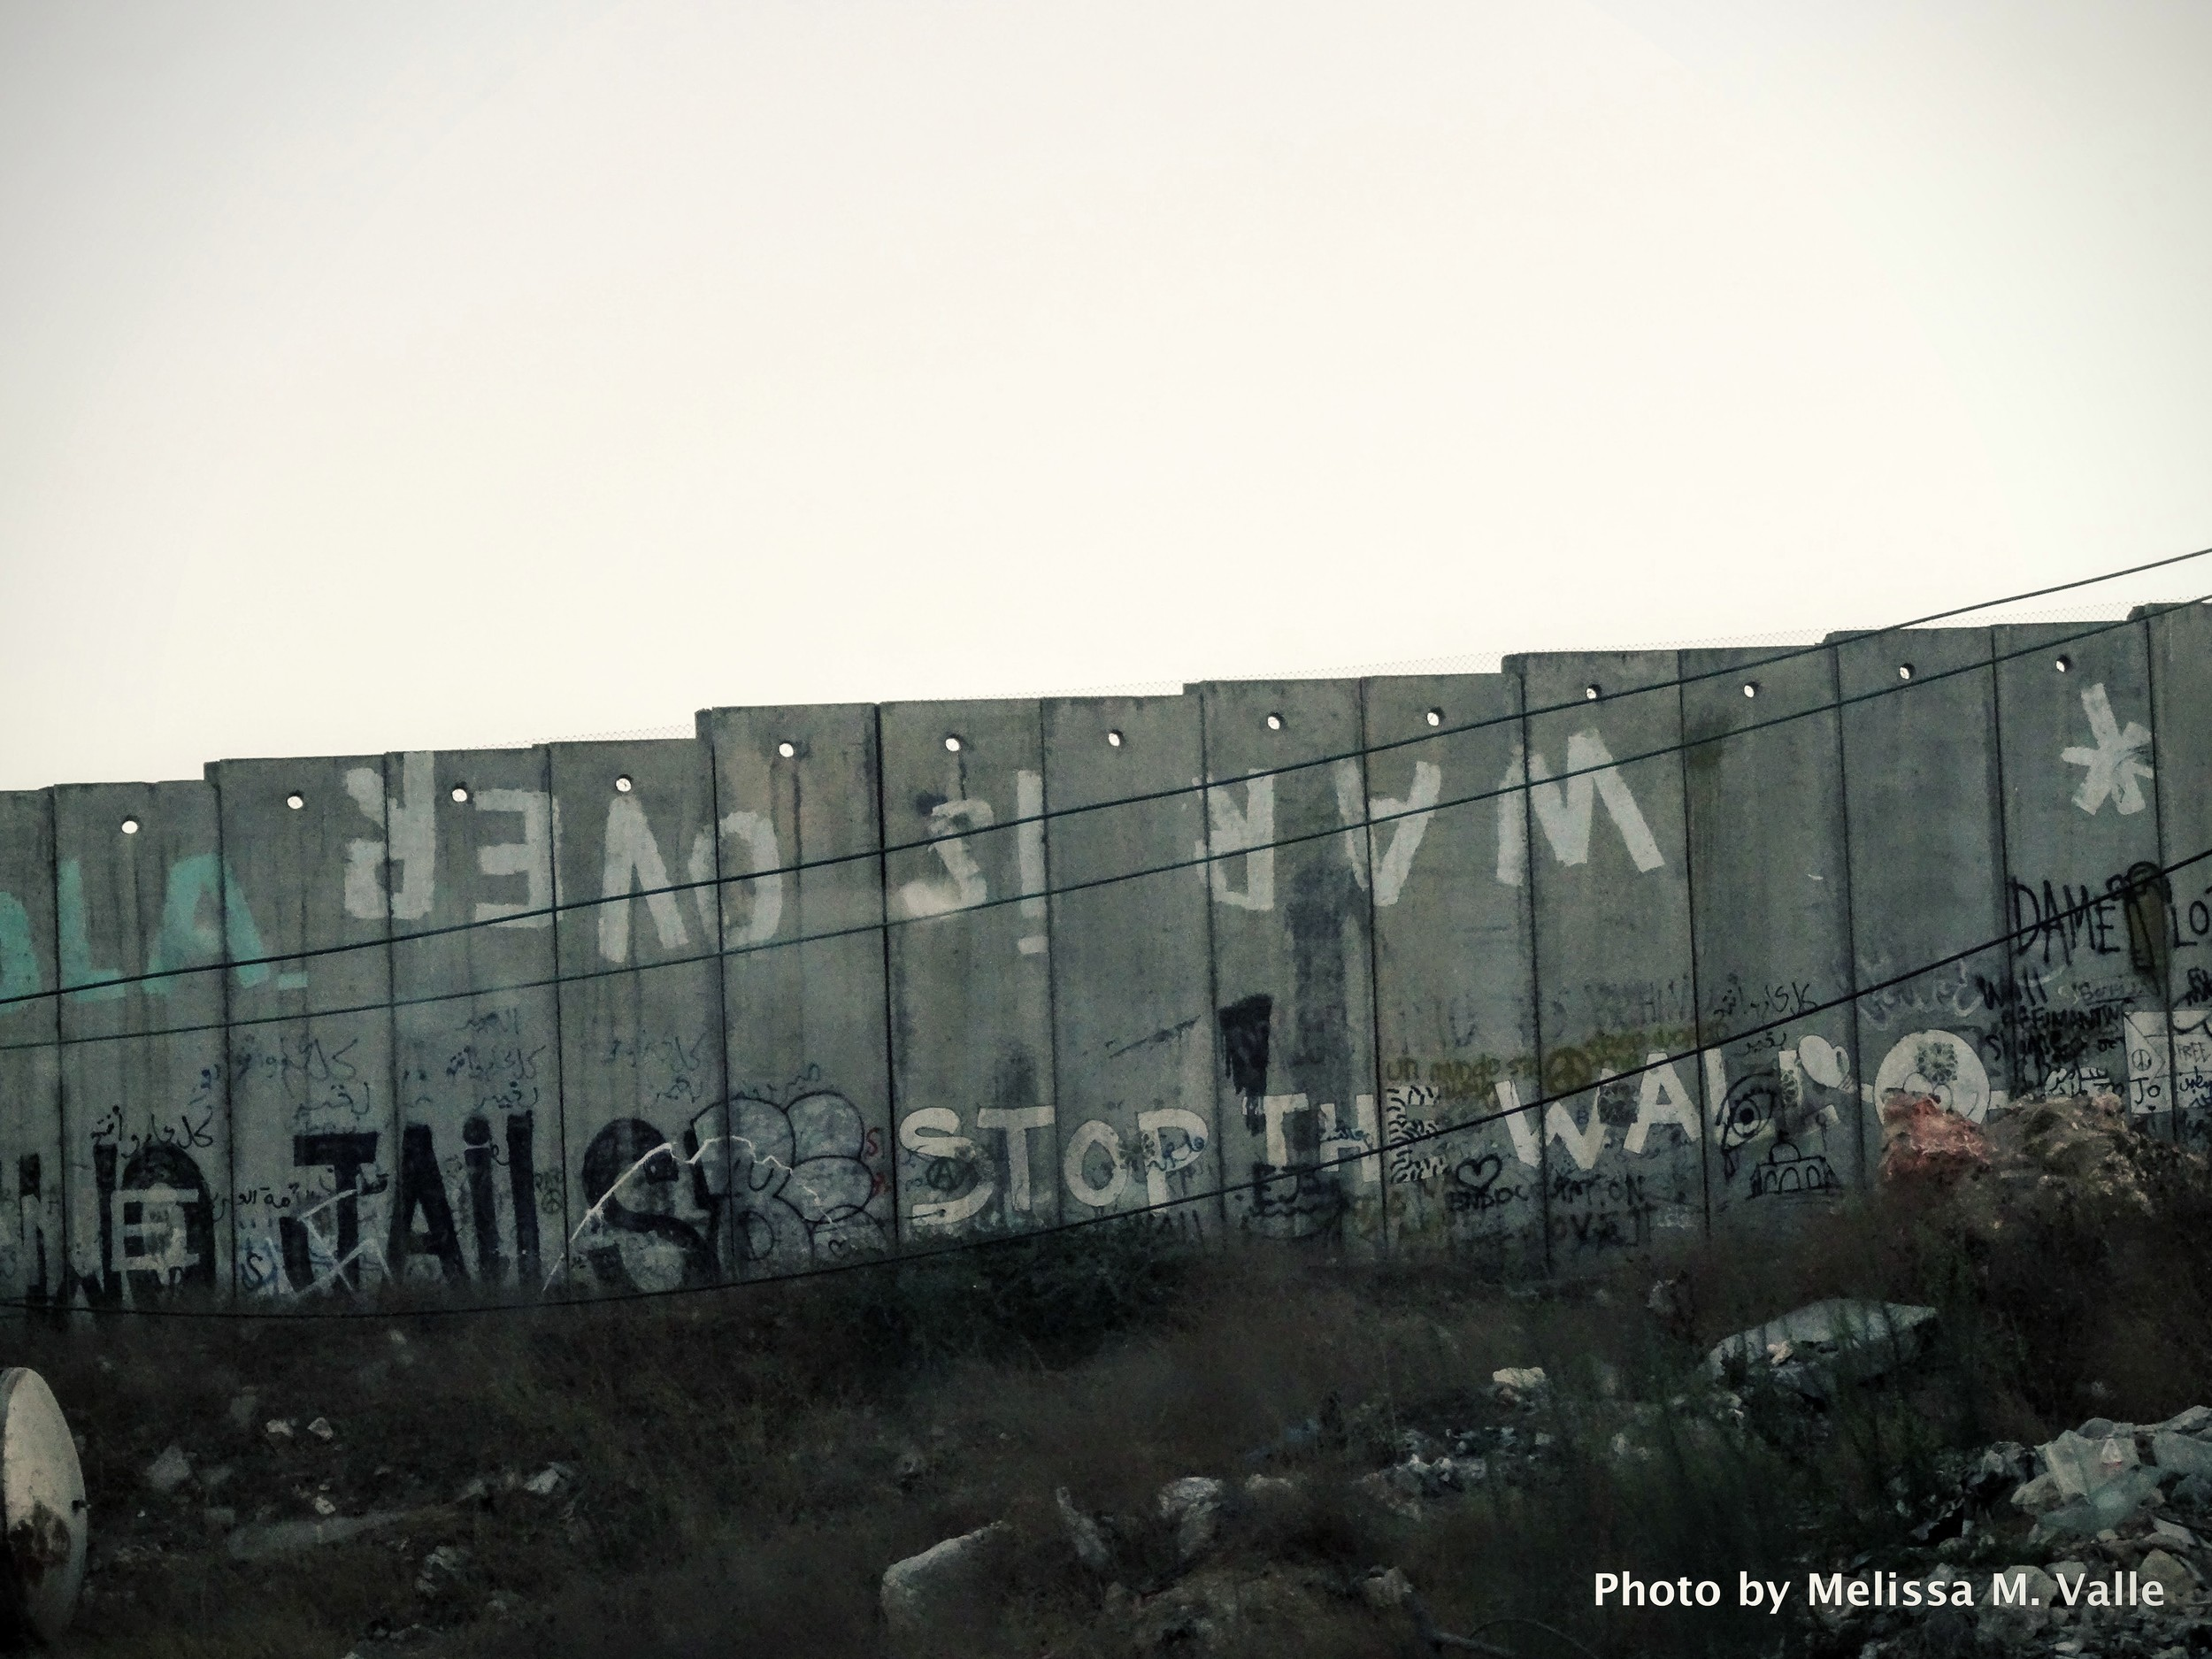 The walls of The Occupied Palestinian Territories